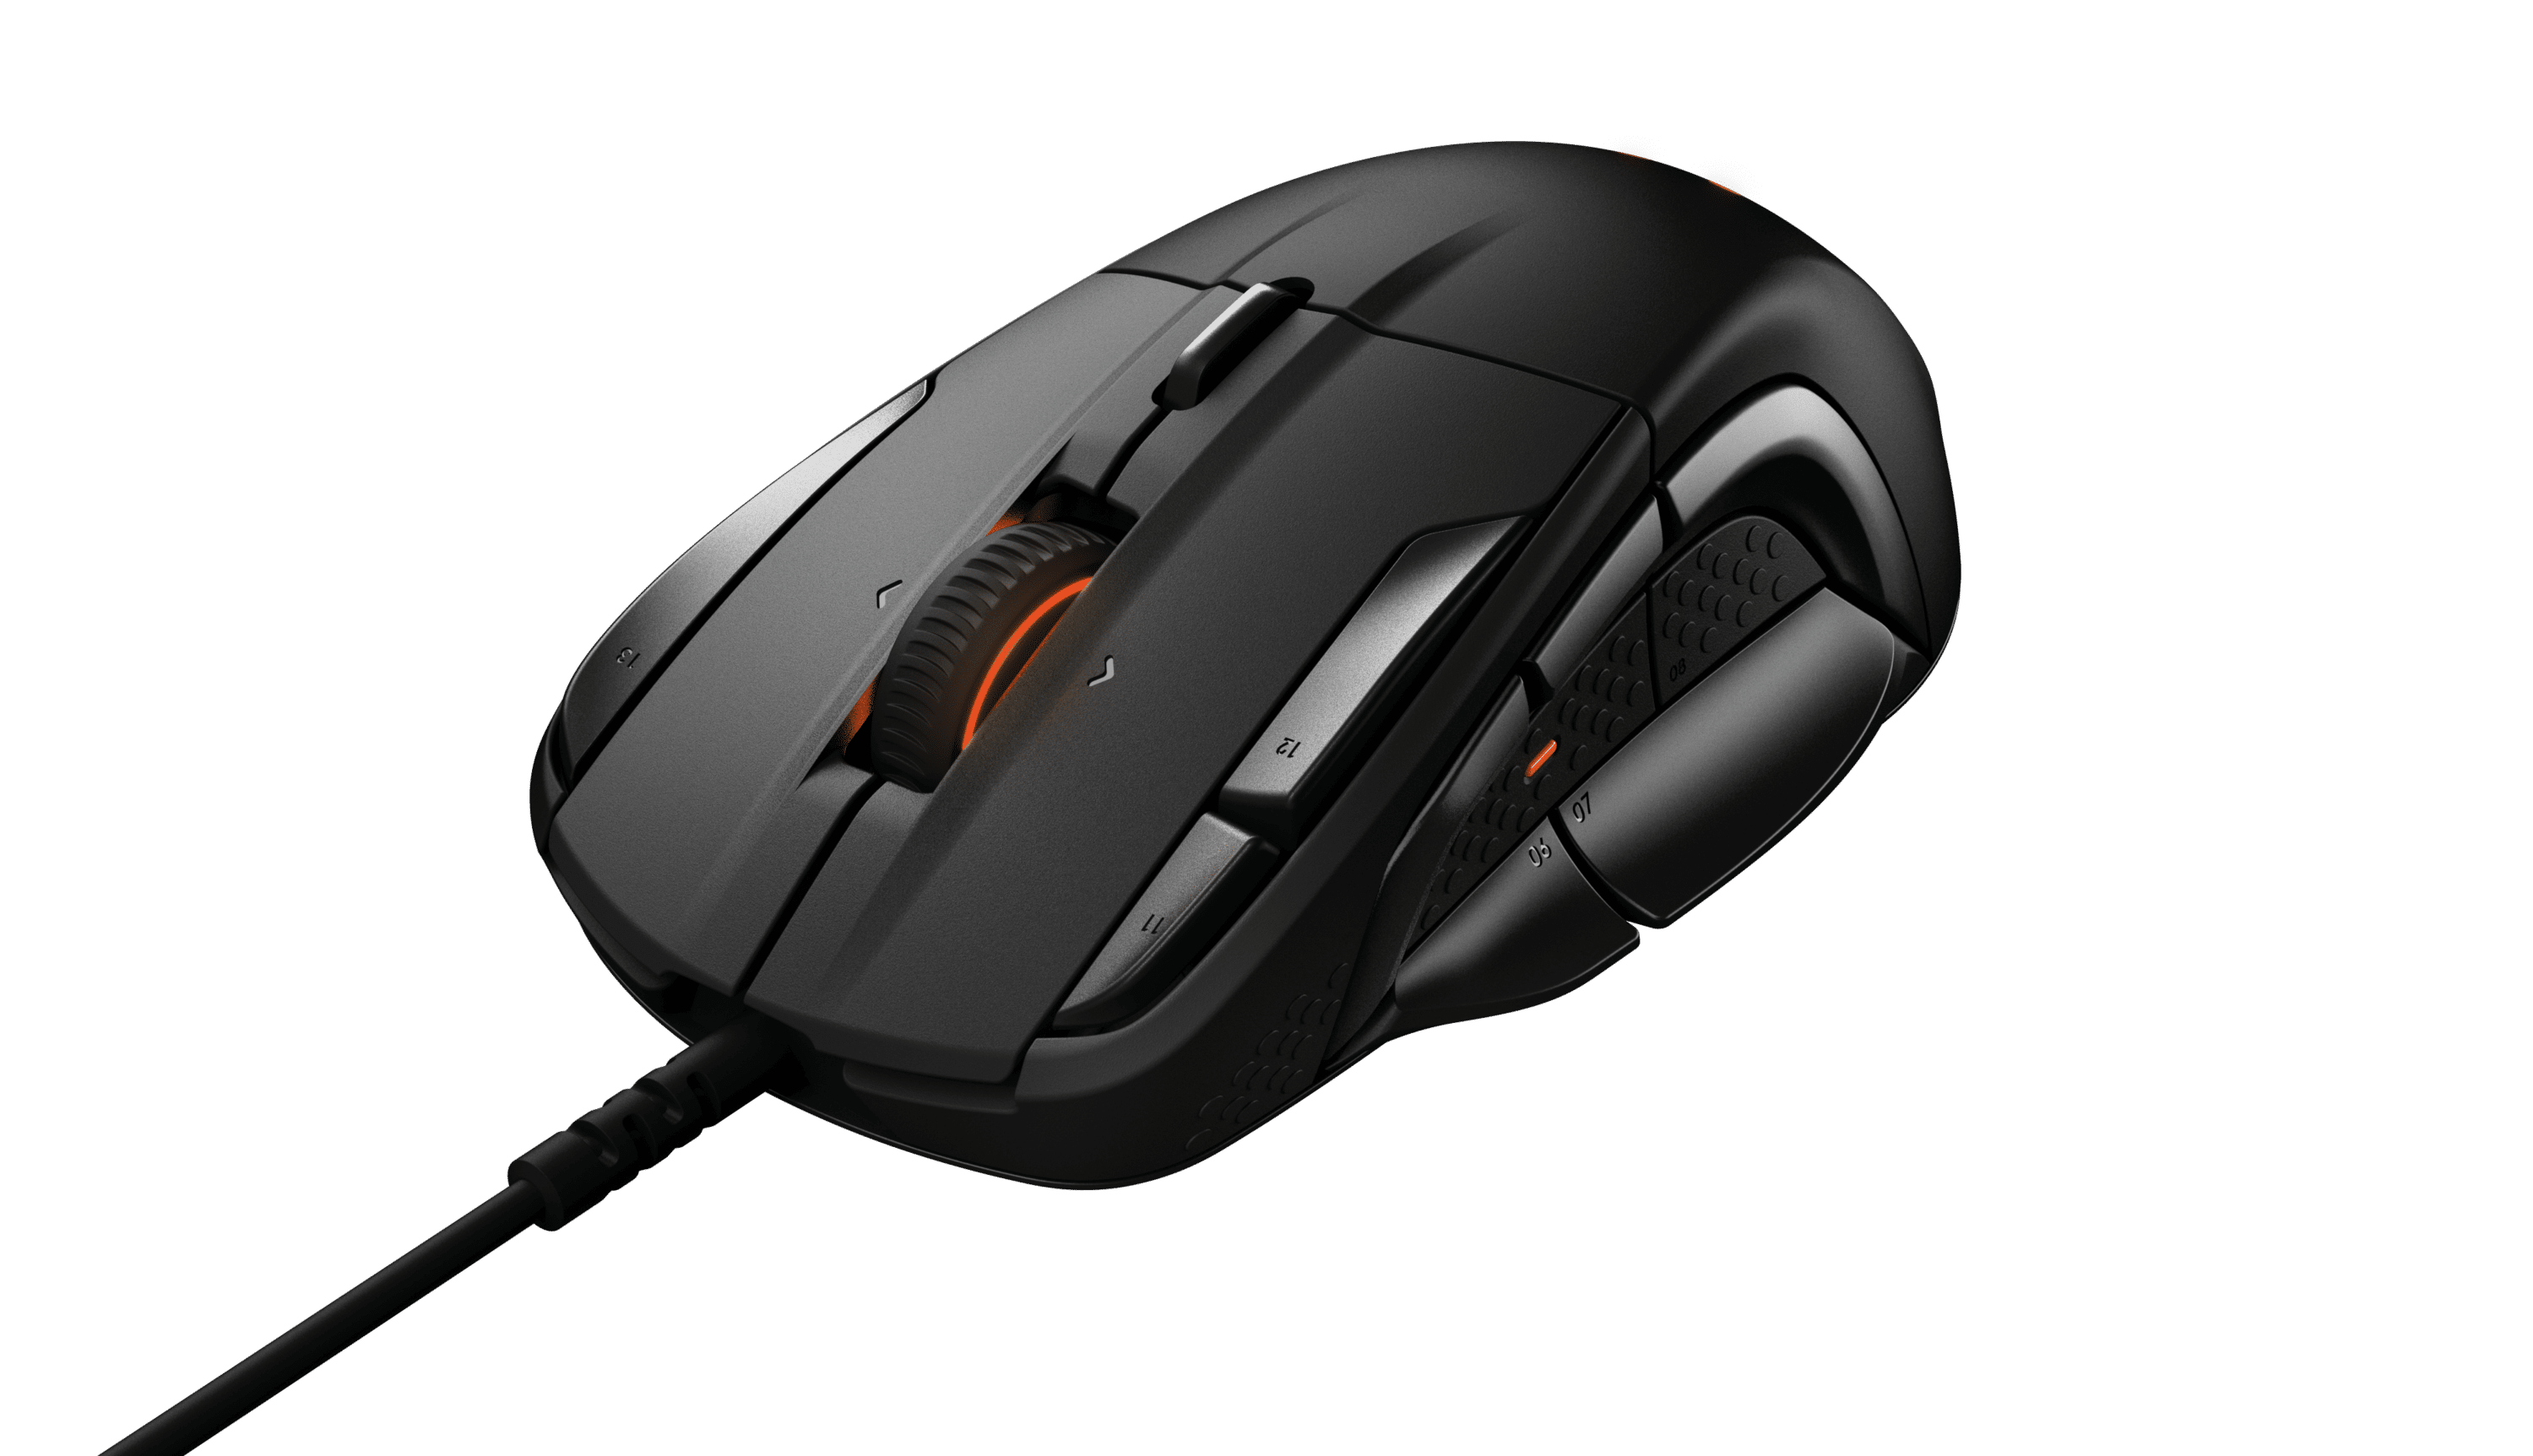 Photo of SteelSeries Rival 500: Neue MMO-/MOBA-Gaming-Maus vorgestellt